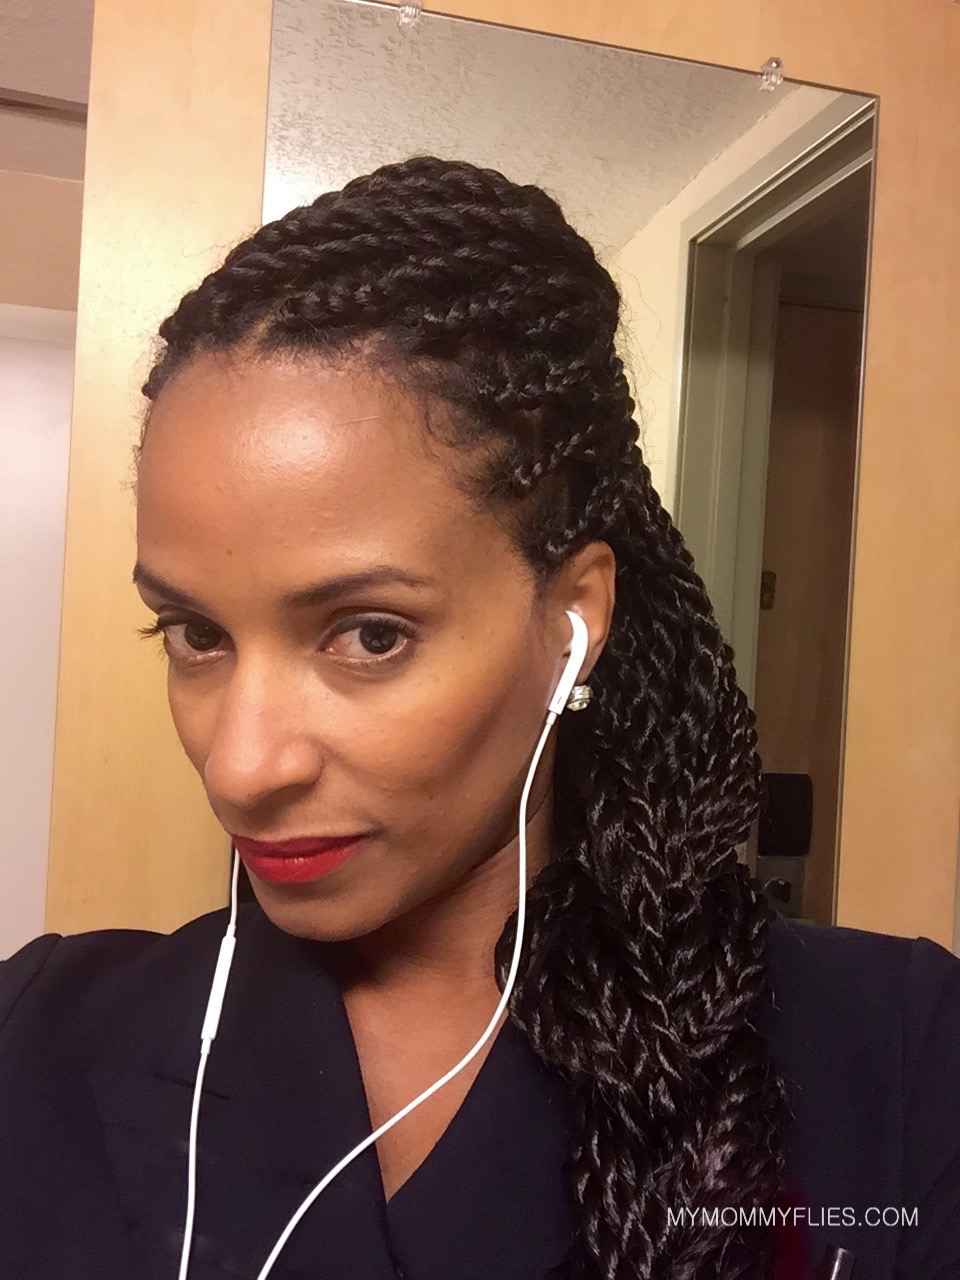 Wondrous 15 Easy Senegalese Twists Hair Styles For Travel My Mommy Flies Short Hairstyles For Black Women Fulllsitofus